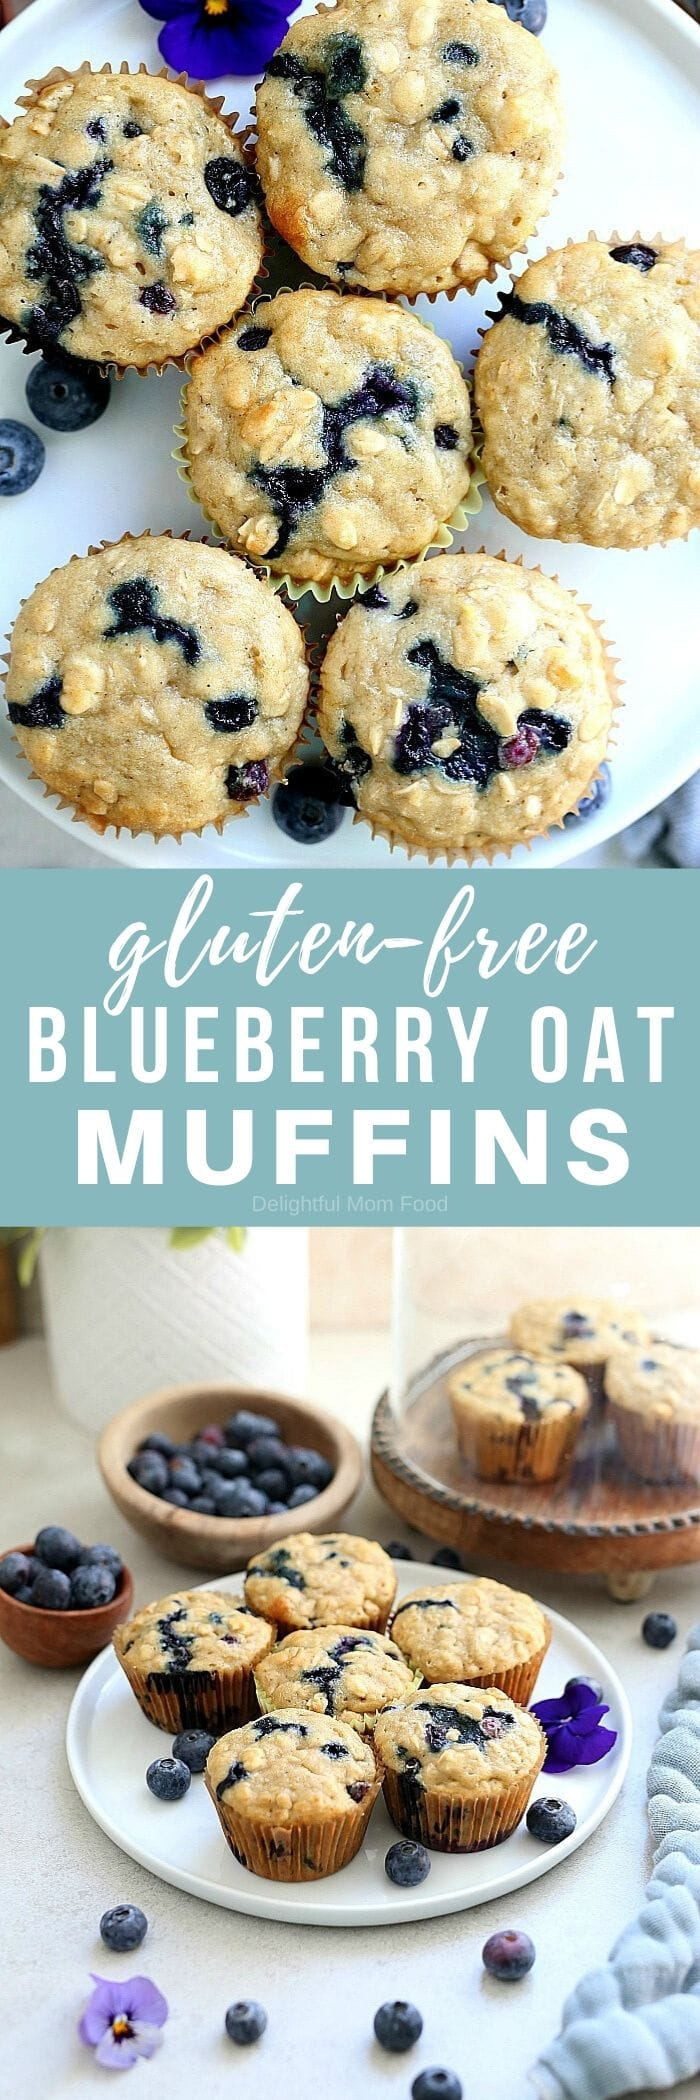 The fluffiest gluten free blueberry muffins recipe! These healthy and easy blueberry oat muffins are seriously the best gluten-free muffins! They are also dairy-free and packed with fiber, juicy blueberries, rolled oats and a hint of lemon zest. #glutenfree #muffins #recipe #healthy #oats #oatmeal #breakfast #brunch #snack #baking #dairyfree #blueberry #blueberries #delightfulmomfood | Recipe at Delightful Mom Food